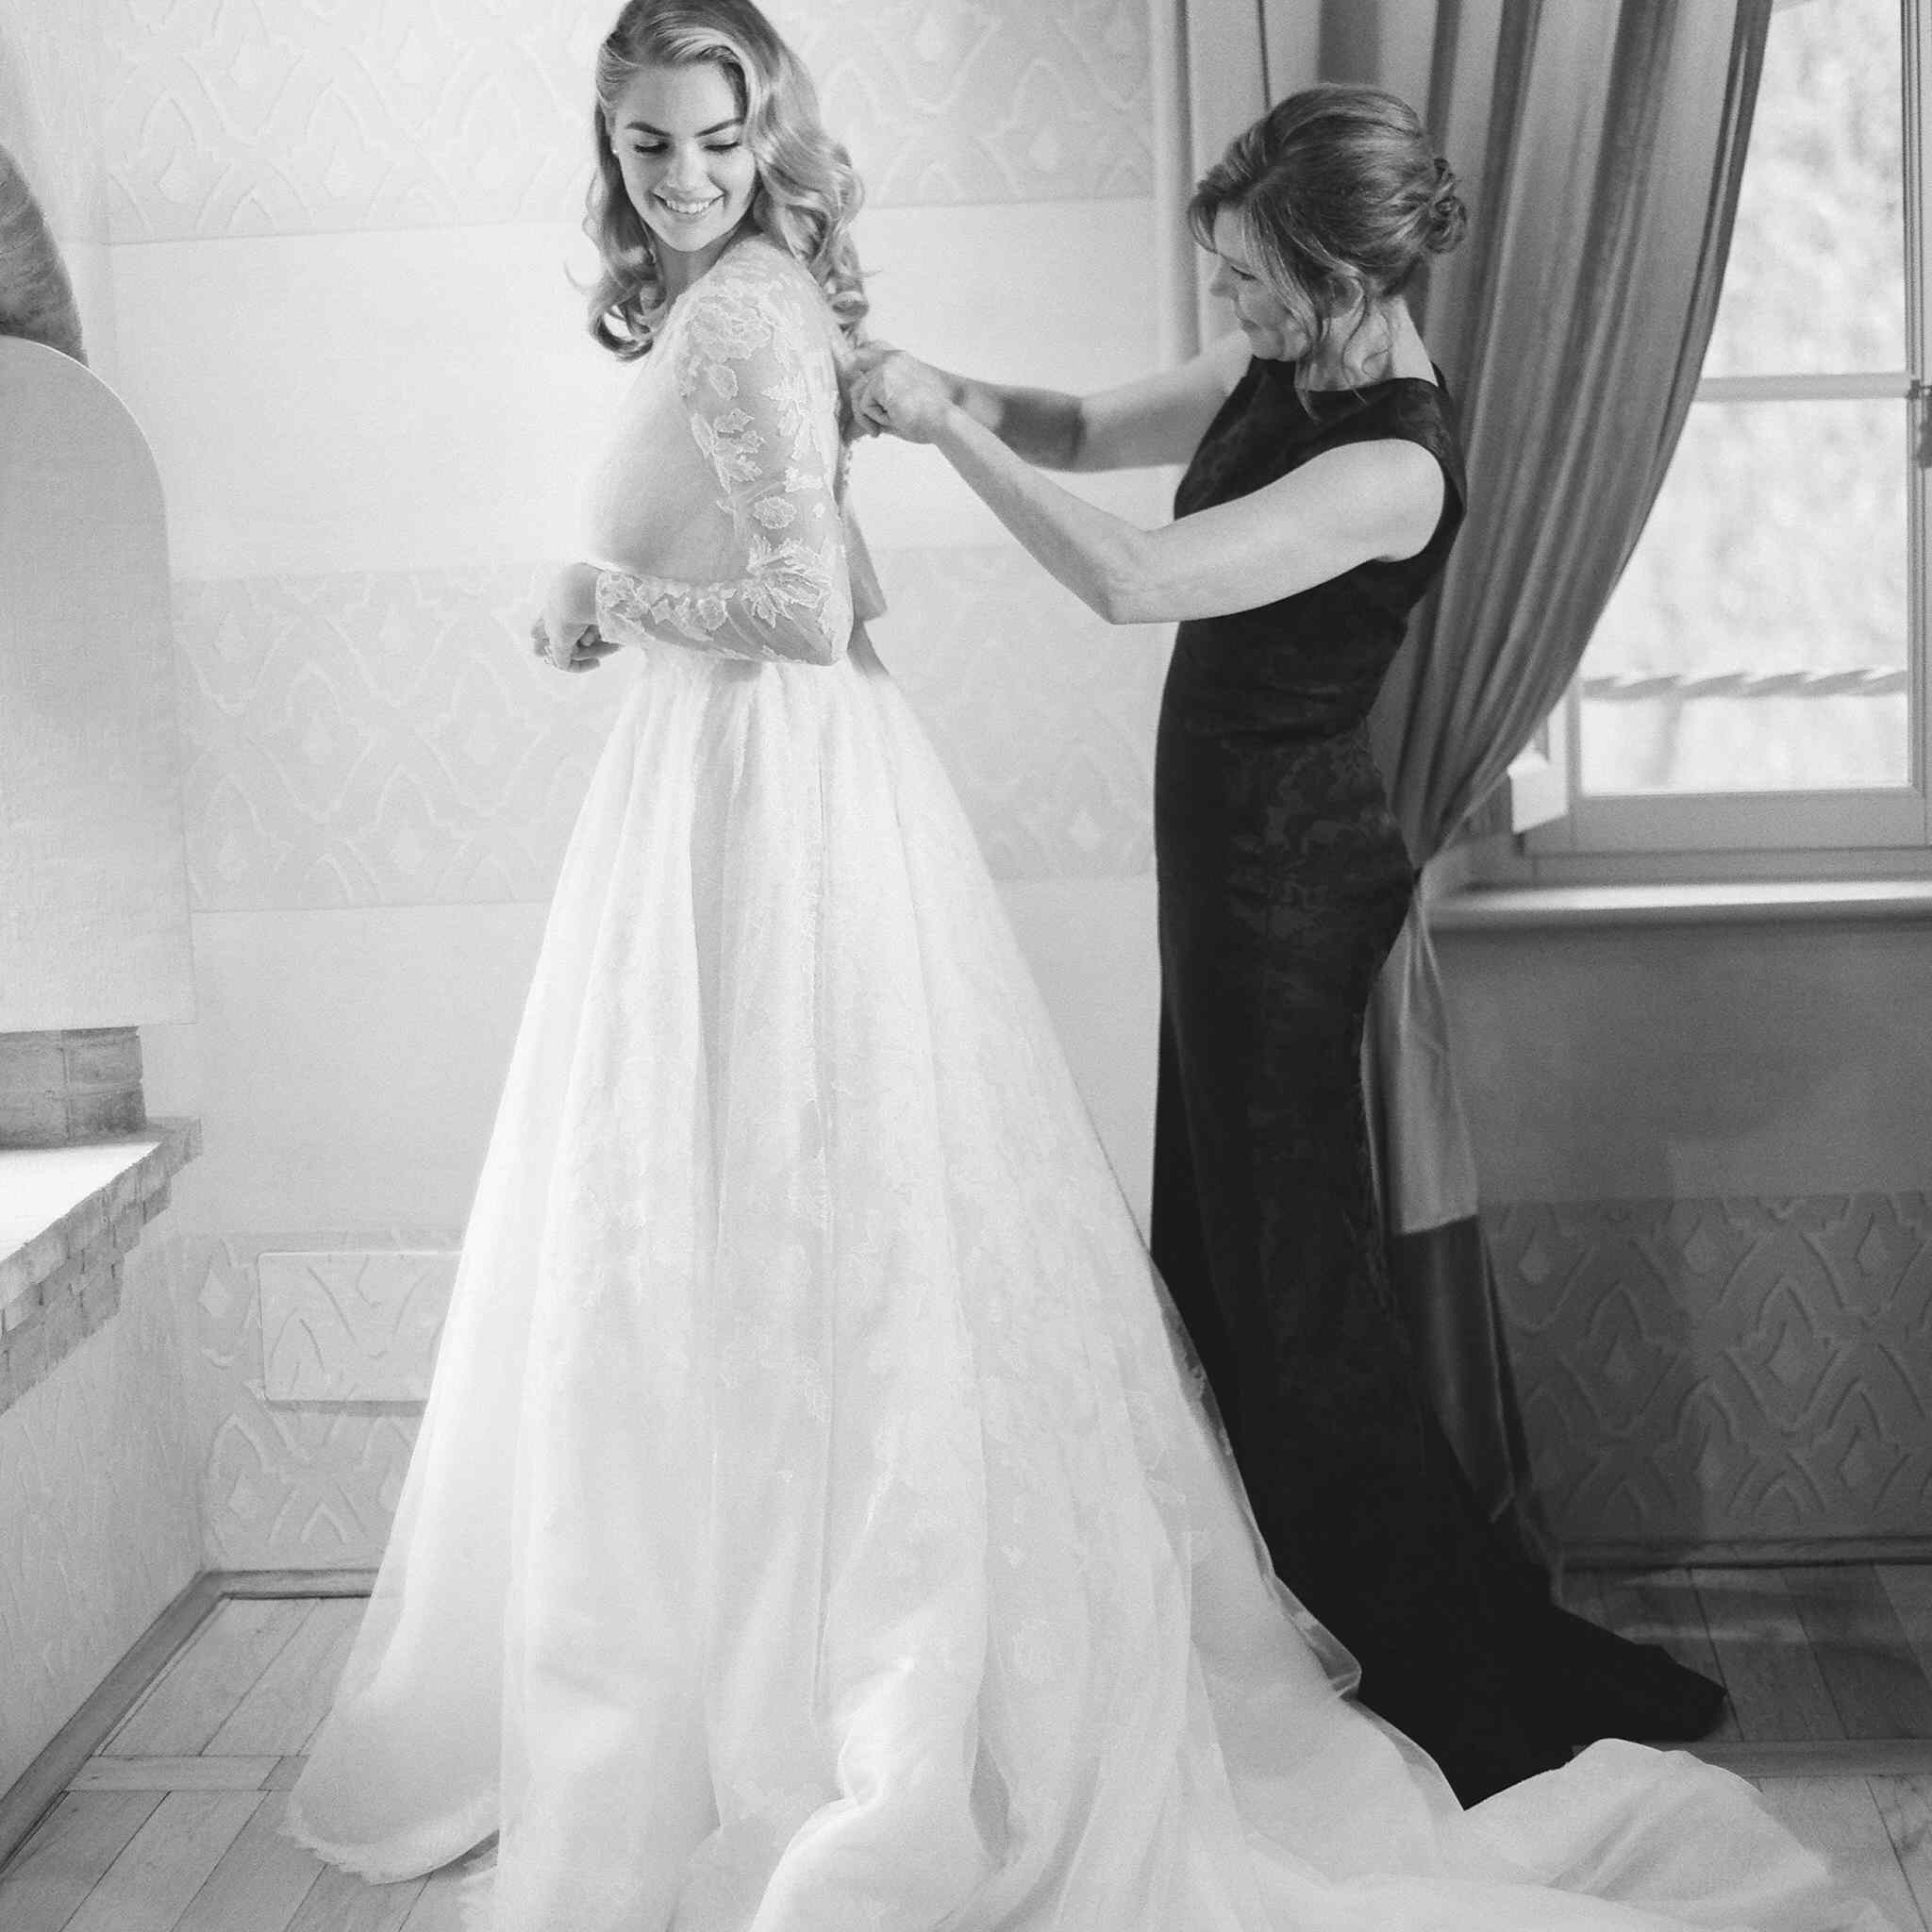 Kate Upton Wedding Dress.Never Before Seen Photos From Kate Upton S Wedding